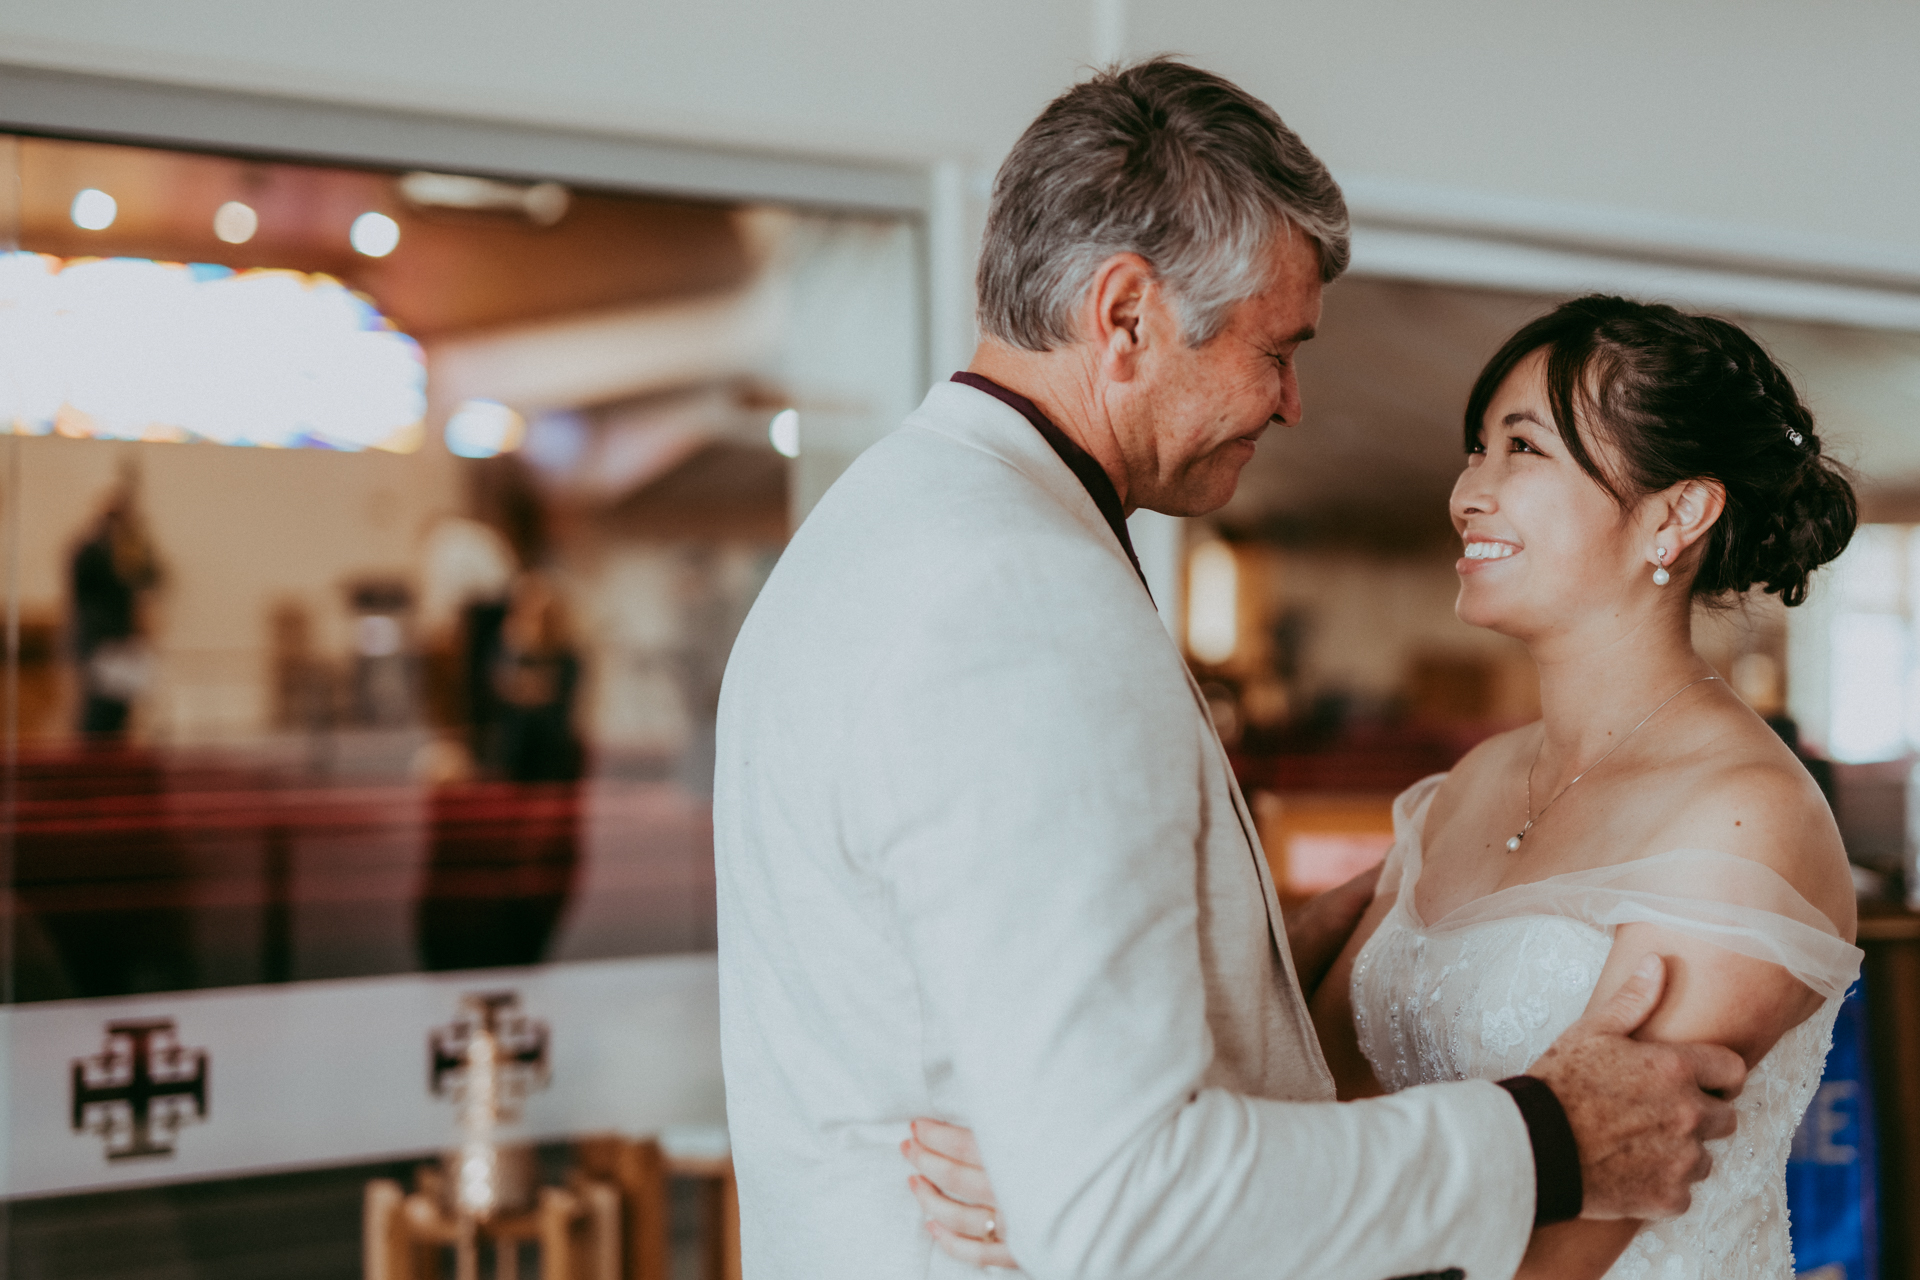 Christchurch, New Zealand Elopement Reception Photo | Father of the bride is immensely proud of his radiant daughter